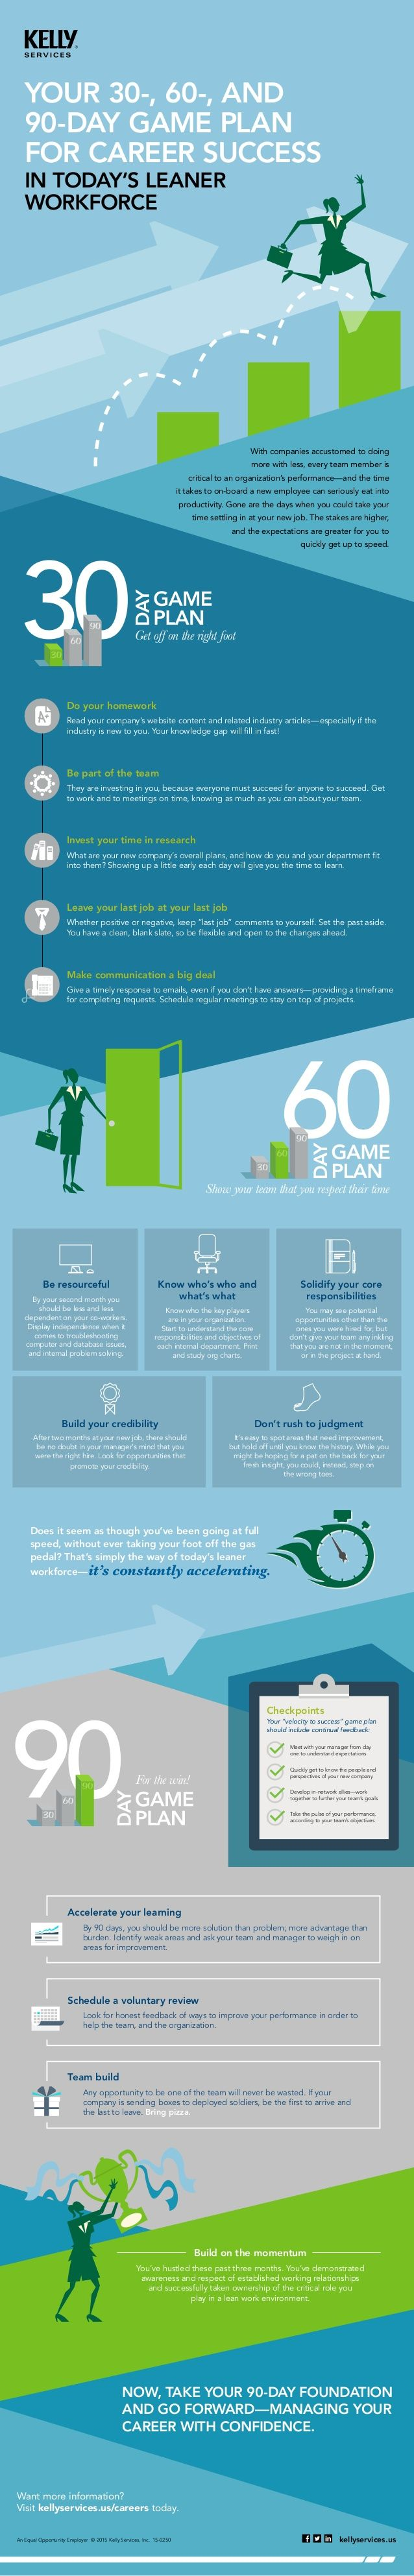 YOUR 30-, 60-, AND 90-DAY GAME PLAN FOR CAREER SUCCESS IN TODAY'S LEANER WORKFORCE